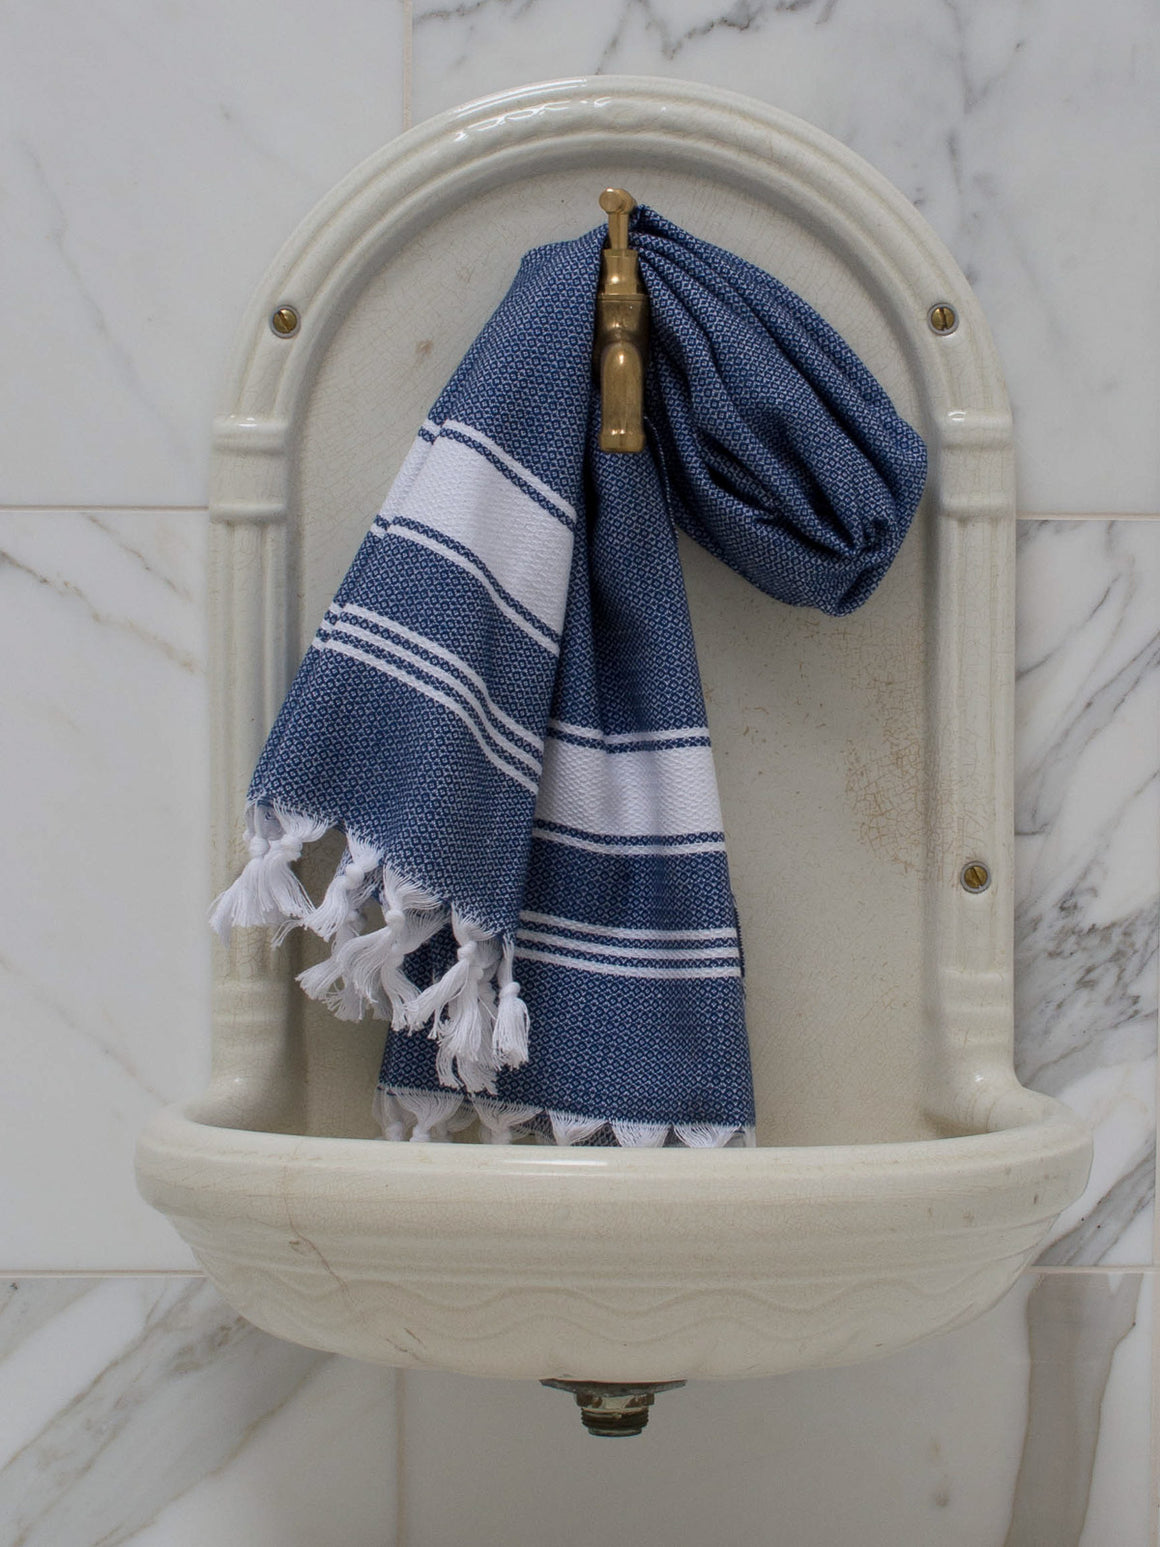 SMALL HONEYCOMB TOWEL NAVY BLUE/WHITE